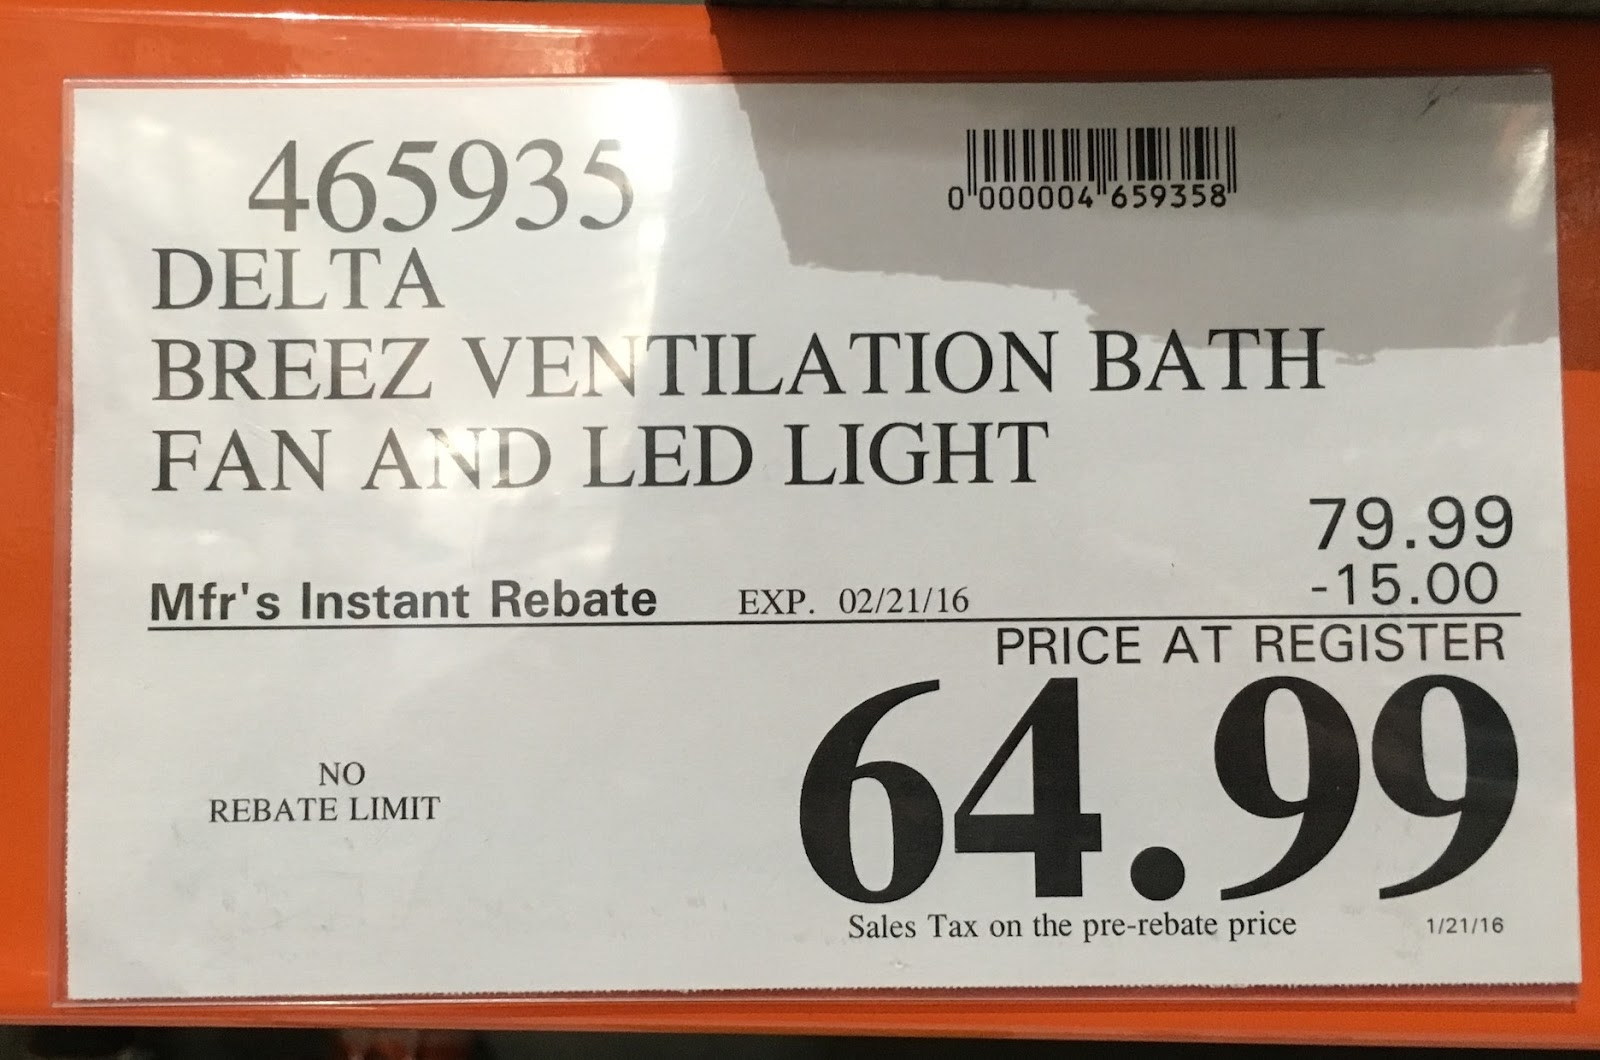 Led bathroom fan light - Deal For The Delta Breez Vfb80hled2 Ventilation Fan And Light At Costco